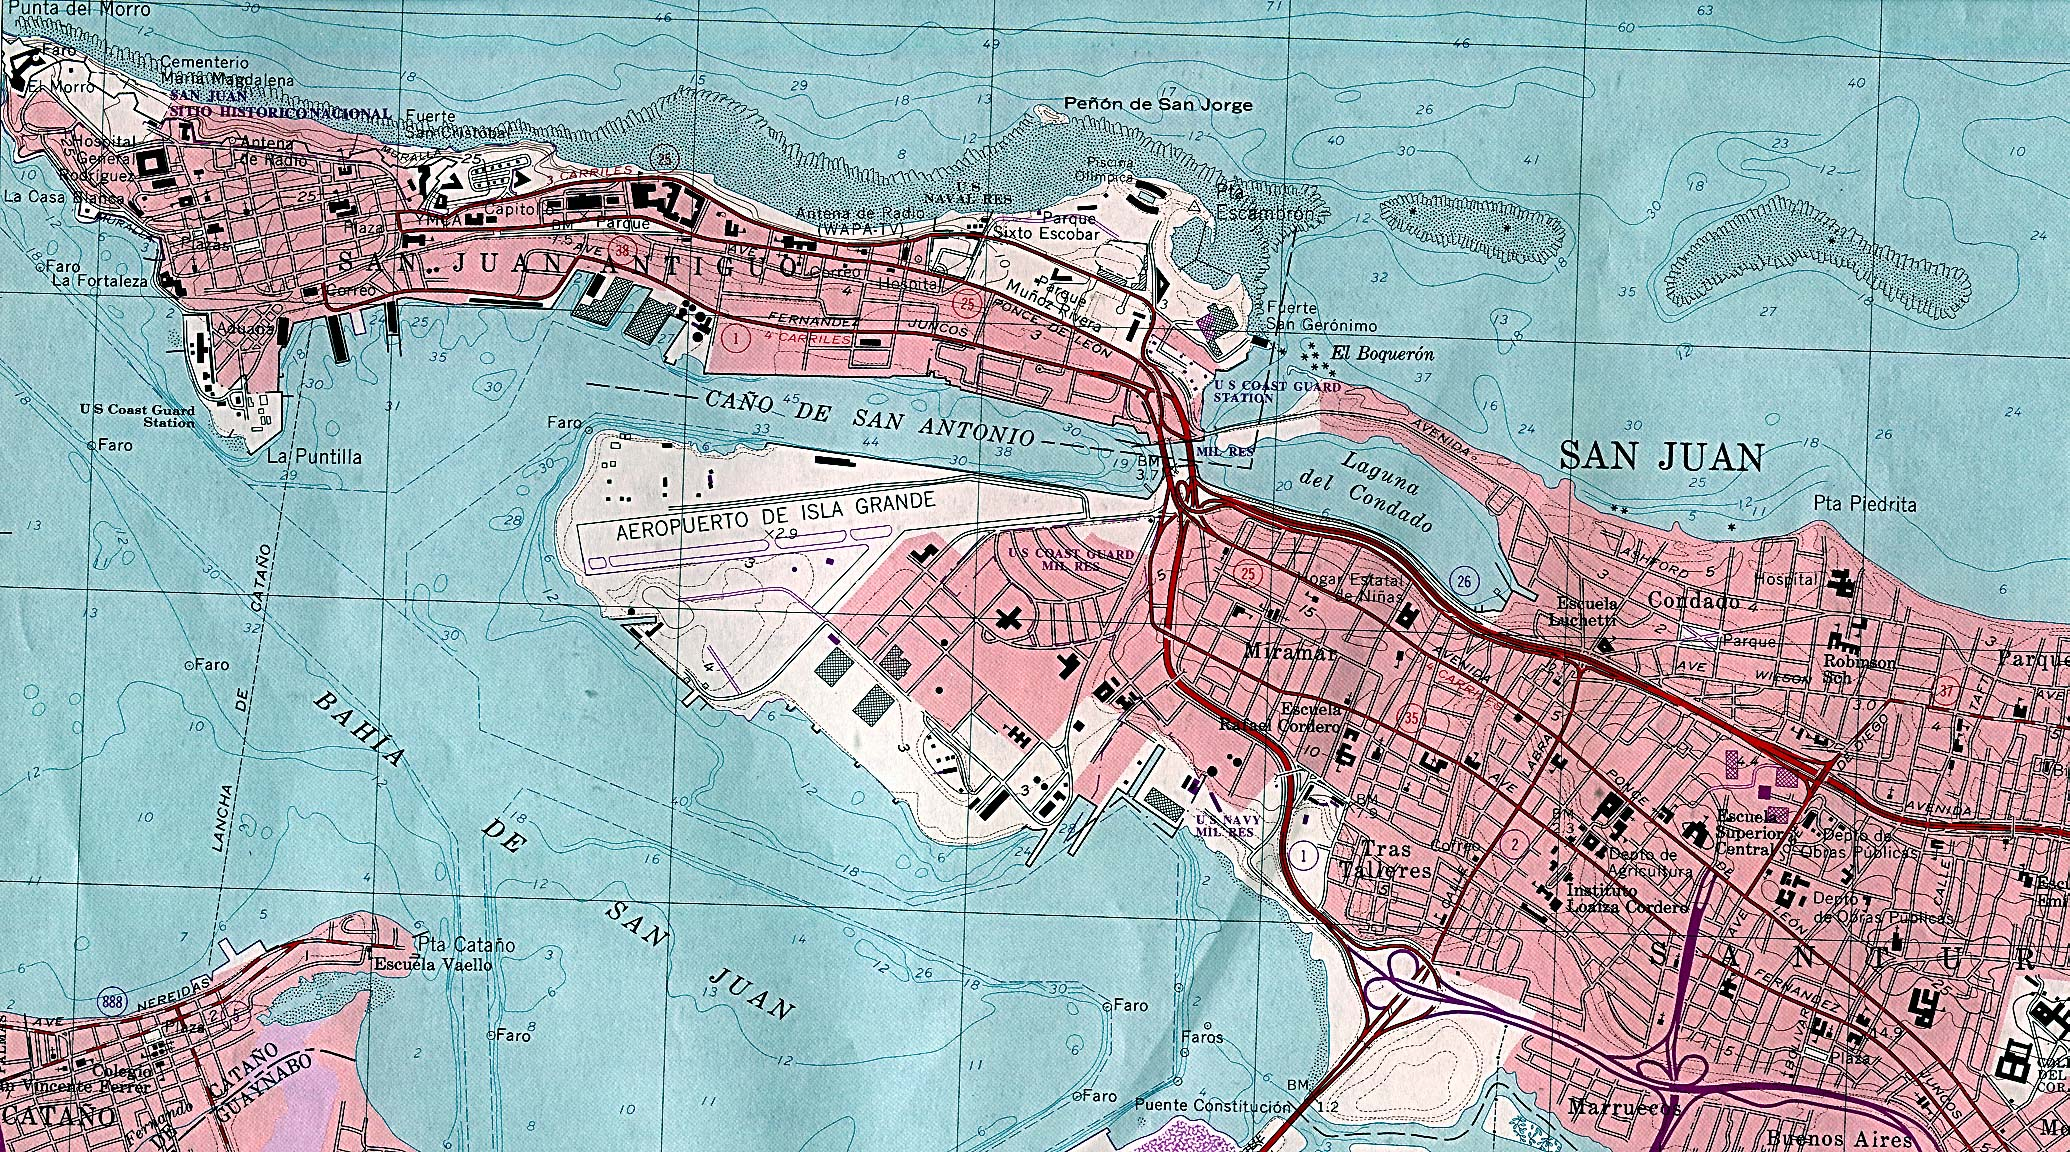 Puerto Rico Maps - Perry-Castañeda Map Collection - UT Library Online